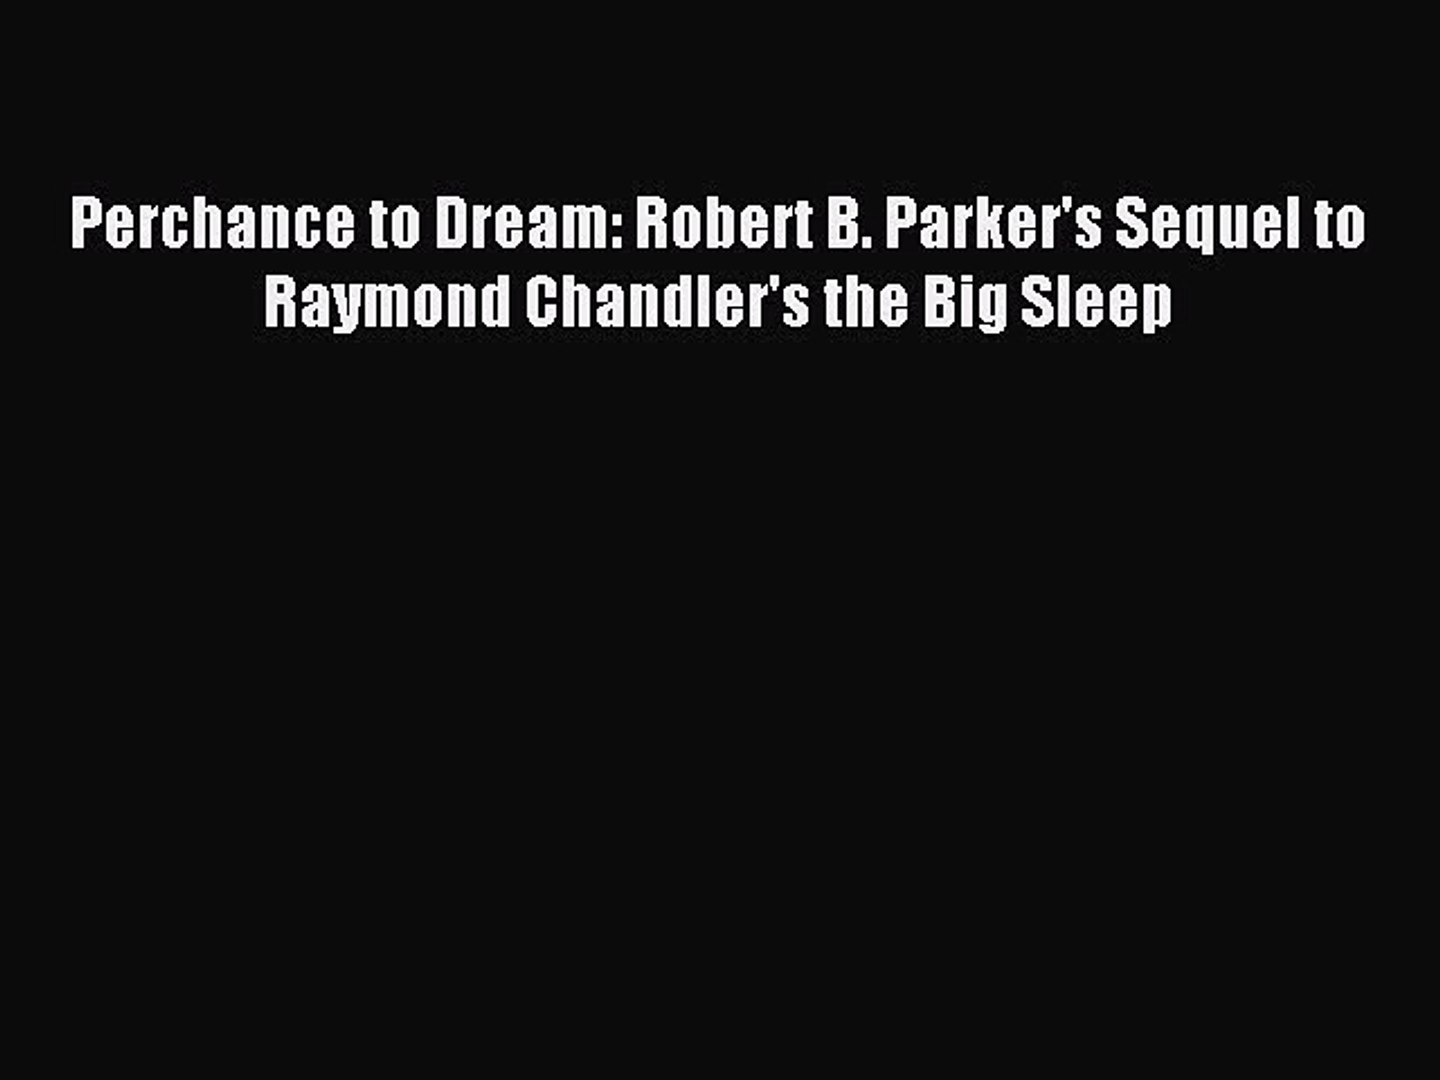 Download Perchance to Dream: Robert B. Parker's Sequel to Raymond Chandler's the Big Sleep